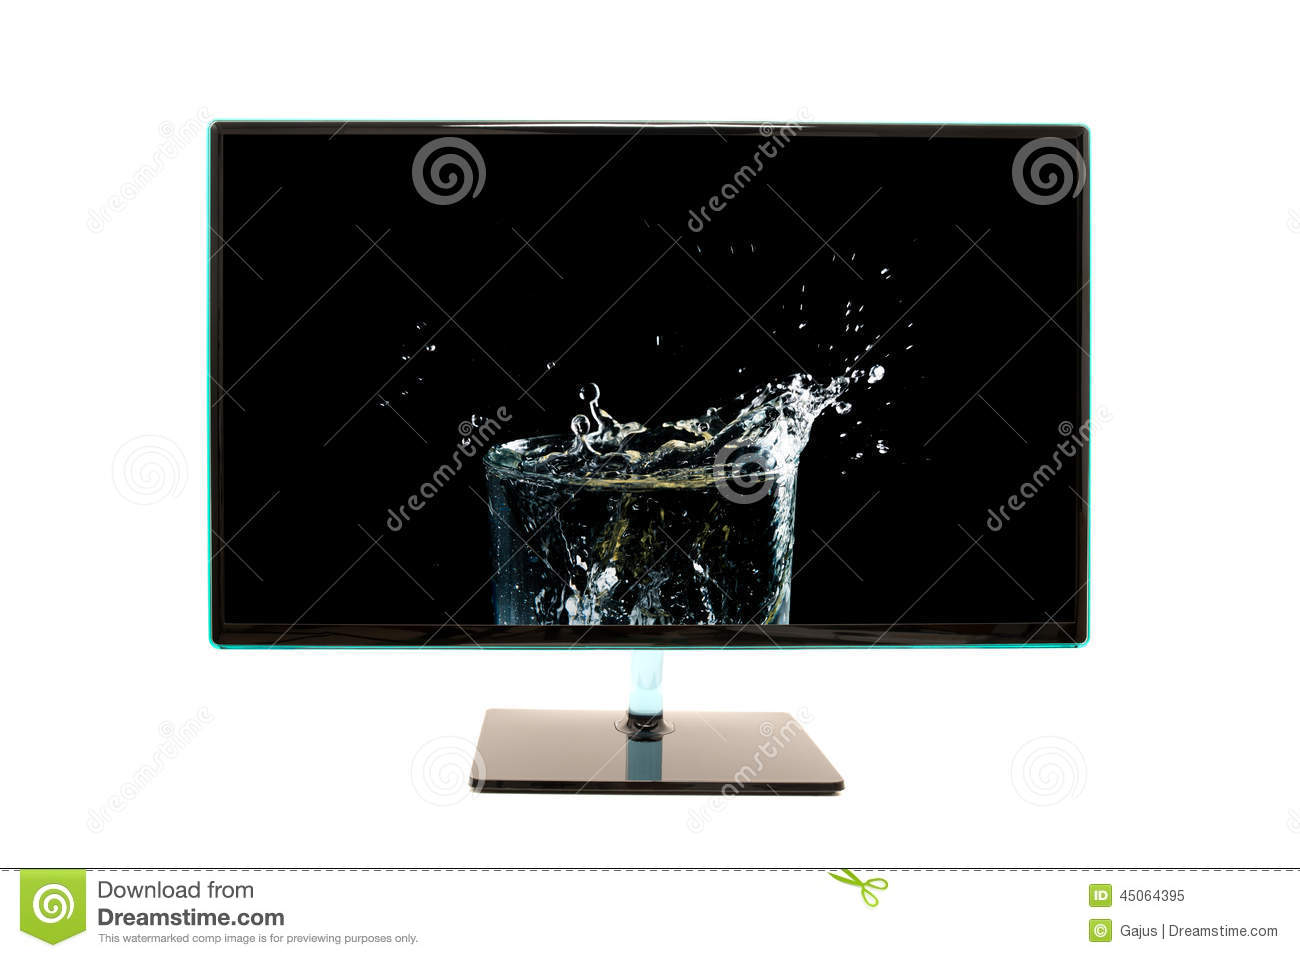 high definition modern computer monitor or television screen showing images frompo. Black Bedroom Furniture Sets. Home Design Ideas